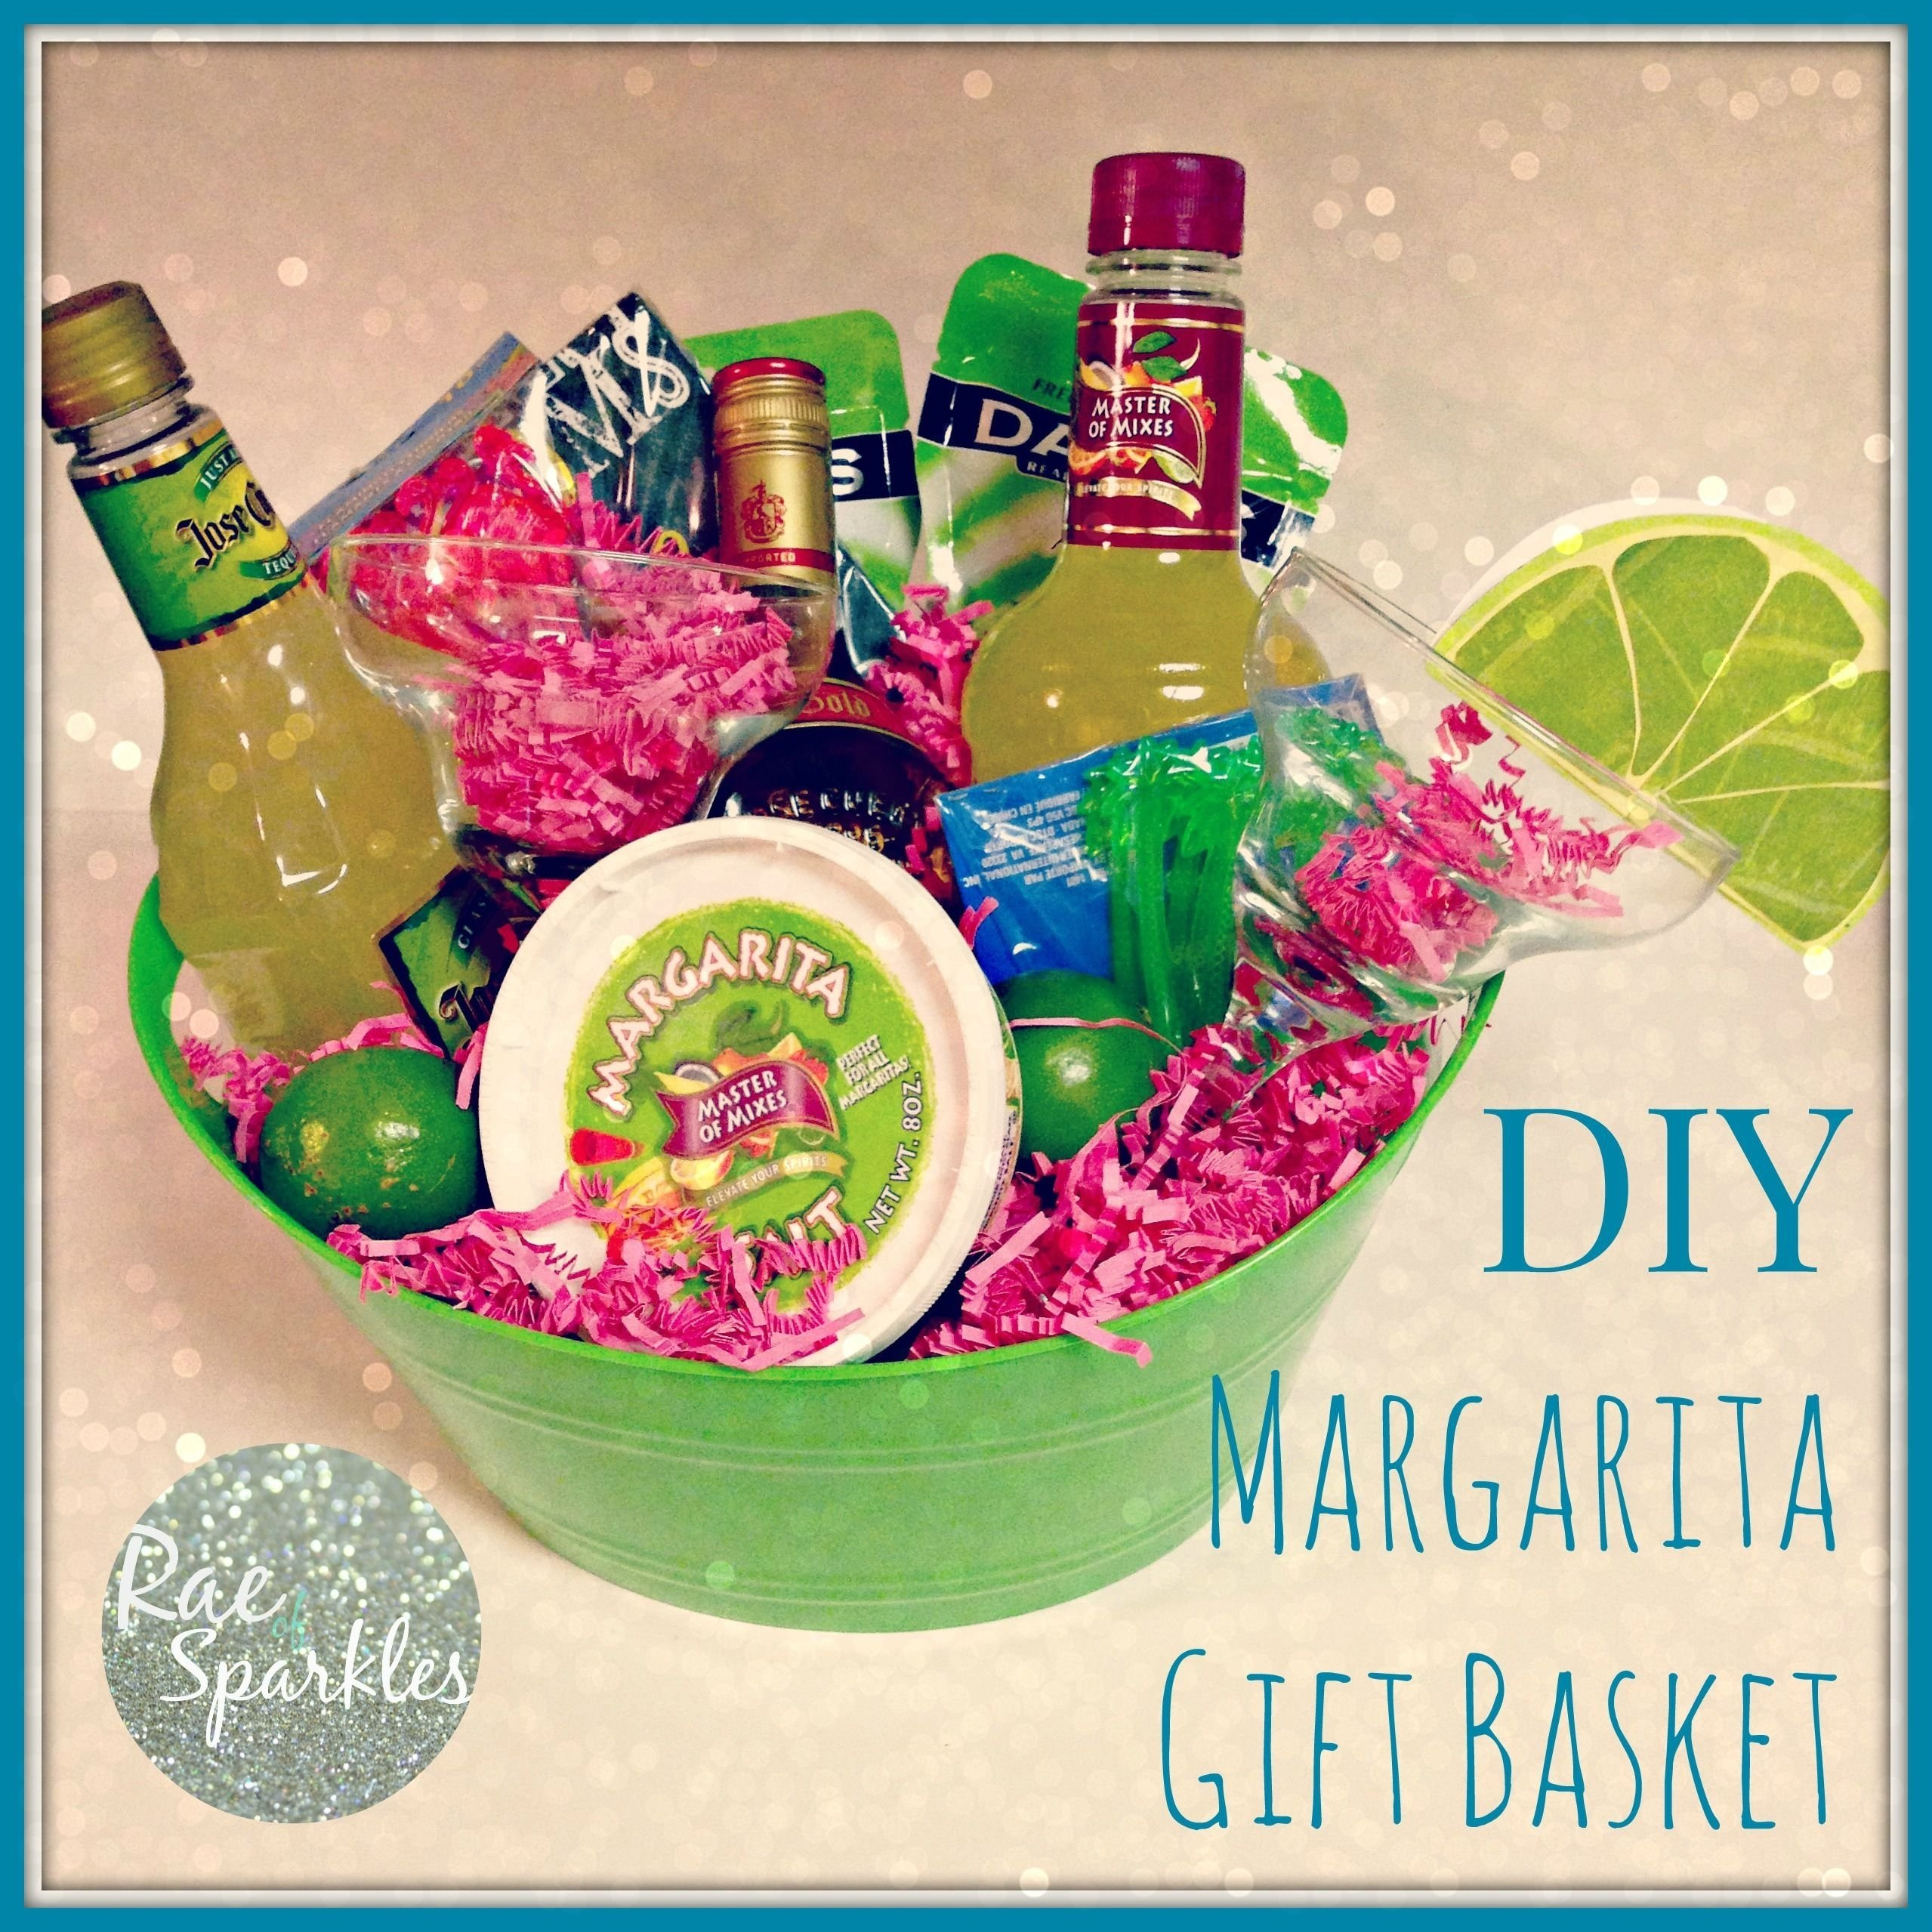 10 Attractive Cinco De Mayo Gift Ideas diy margarita gift basket perfect gift for a friend who has 2020